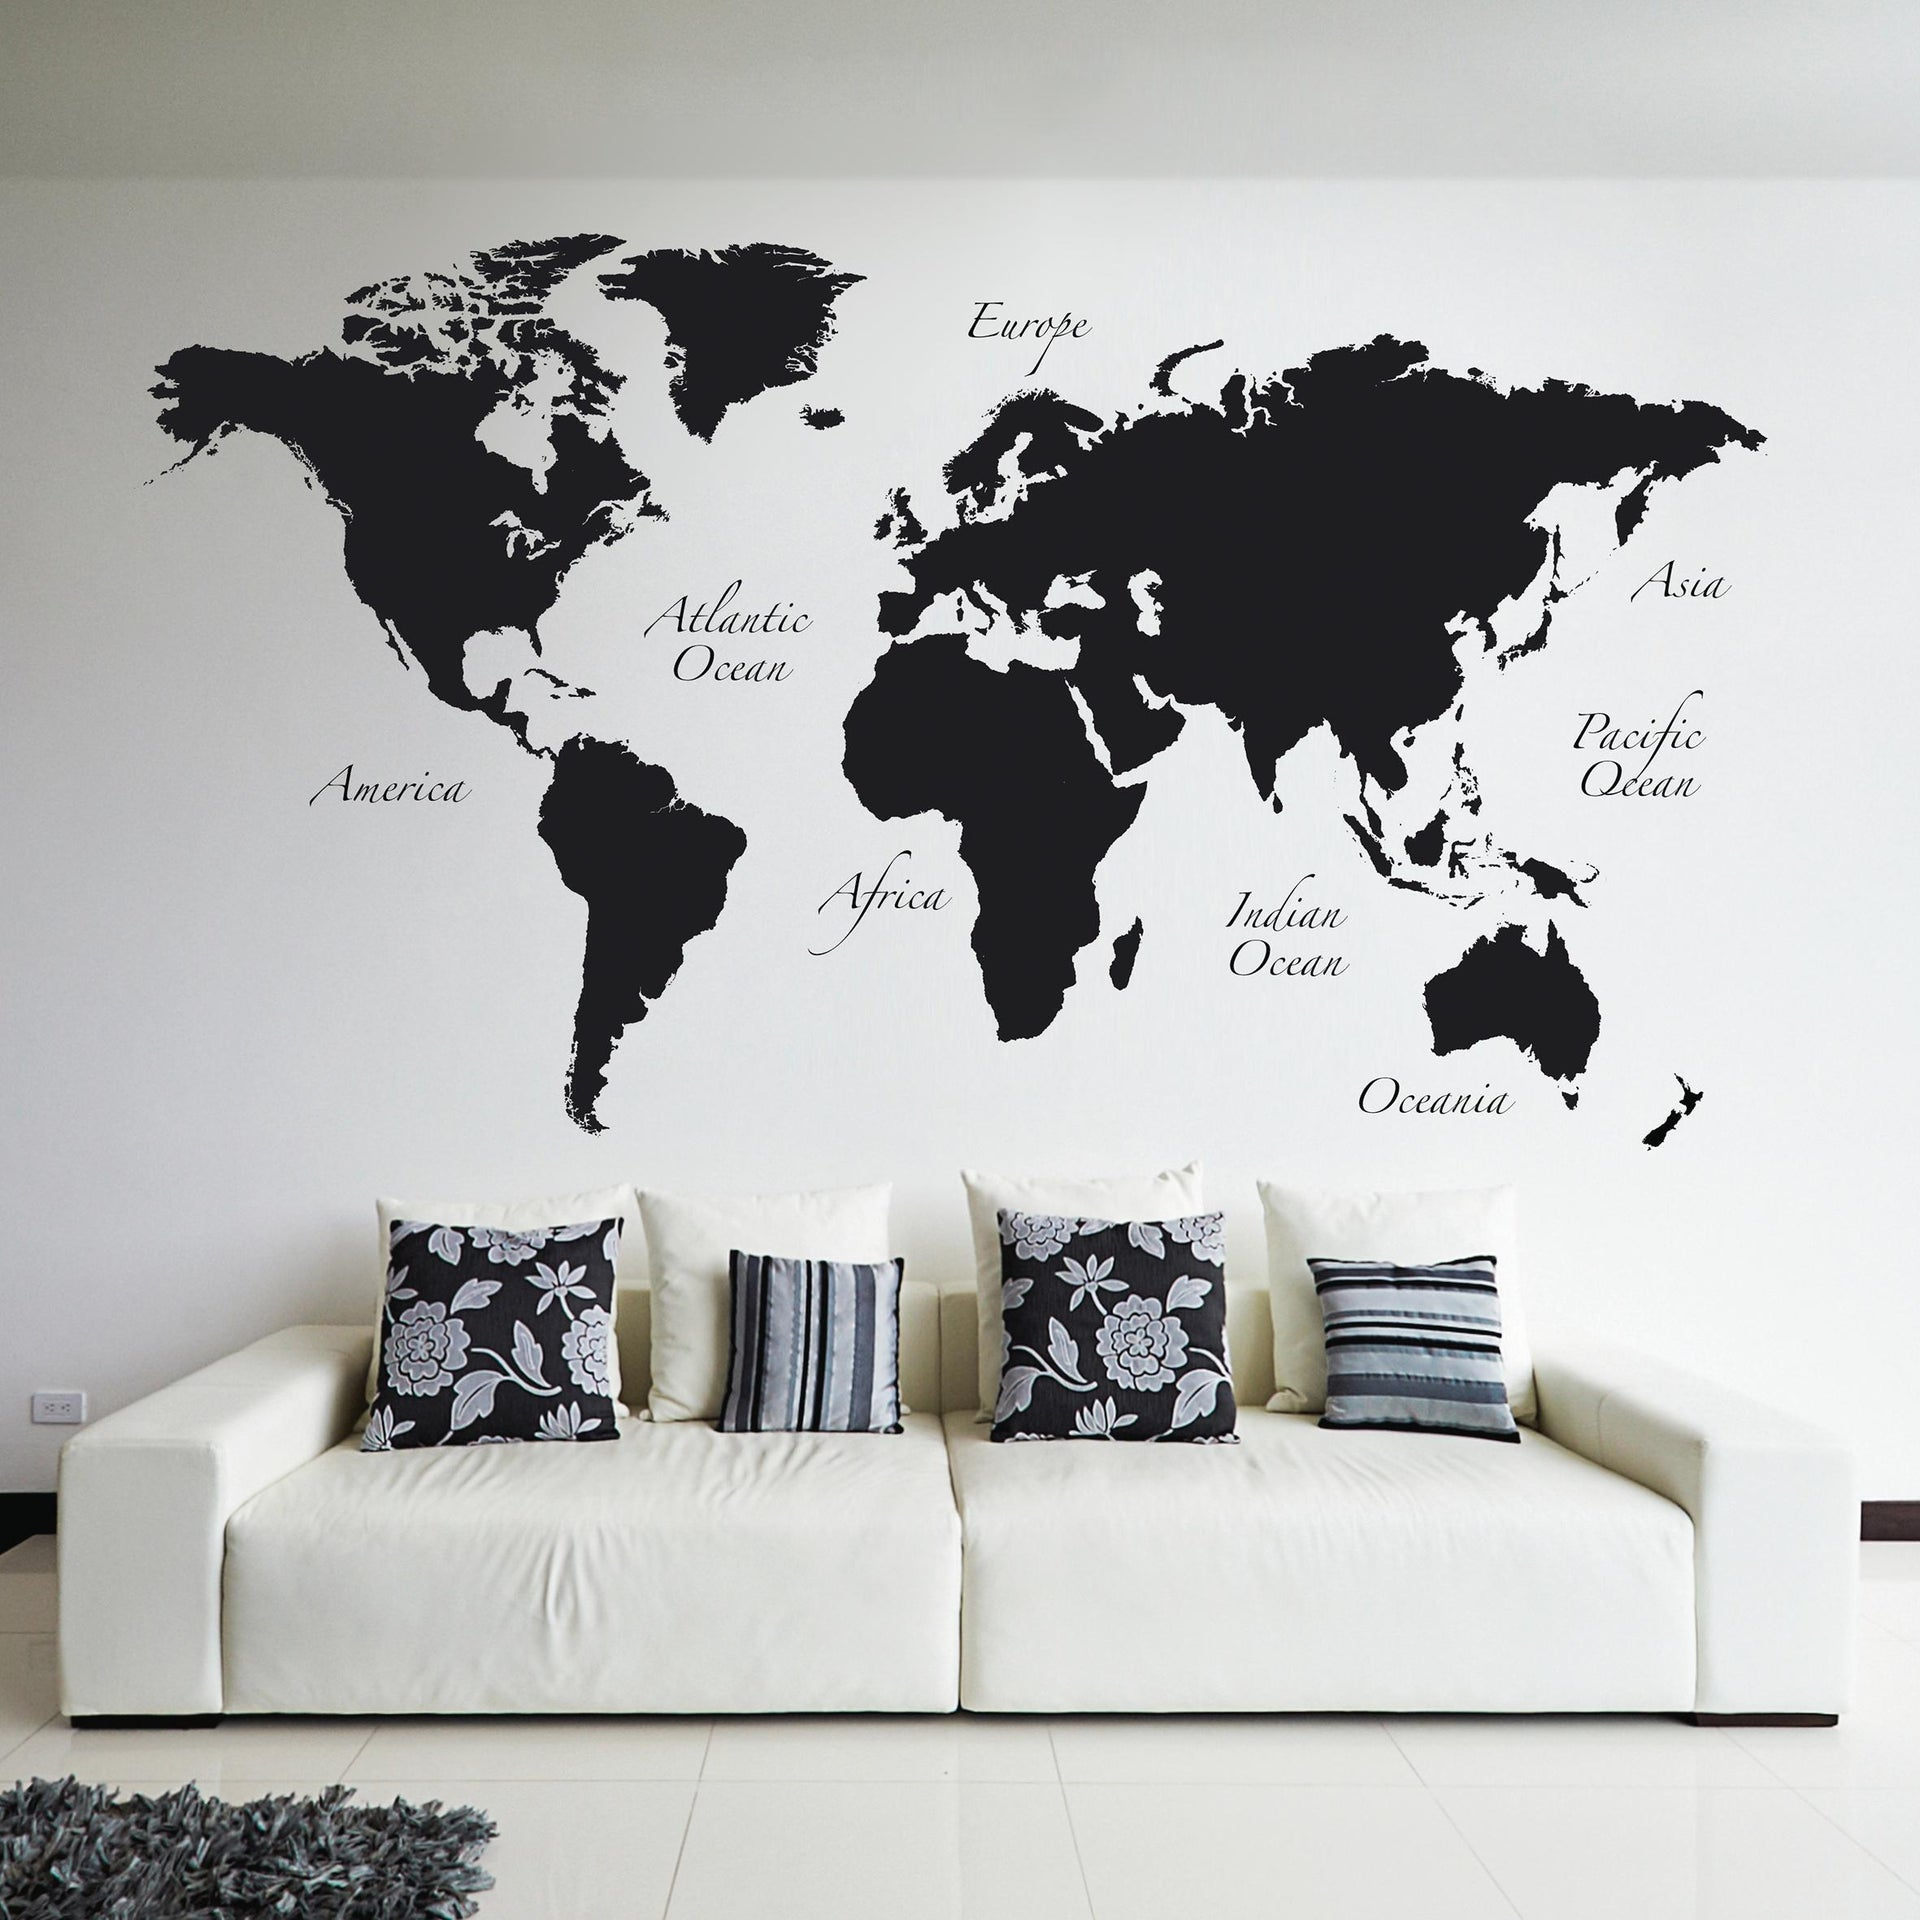 Sticker Giant Wall Worldmap 100x100 cm - 1